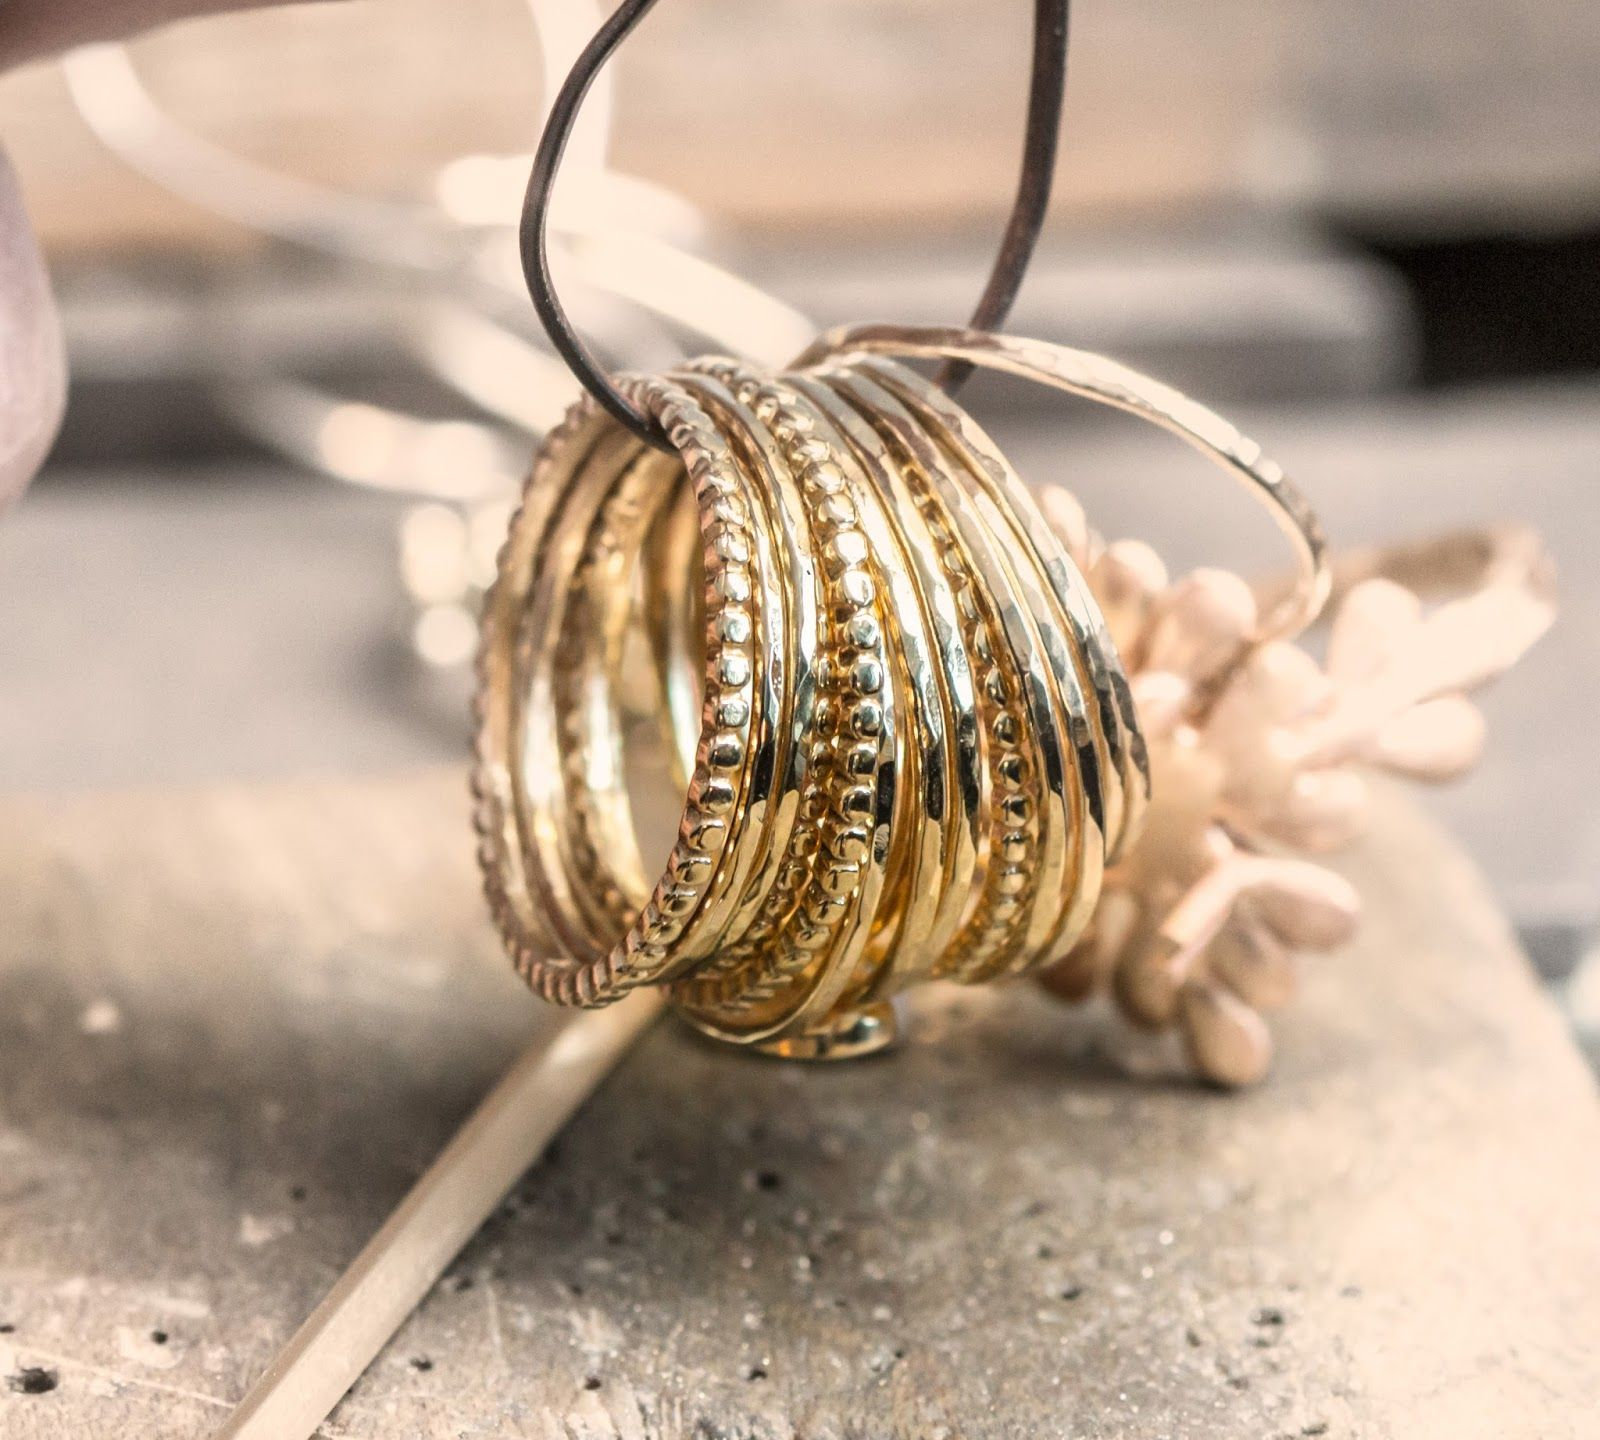 Skinny gold stacking rings by Melanie Casey..... Made me think of that silver set you have!!! @pkinak